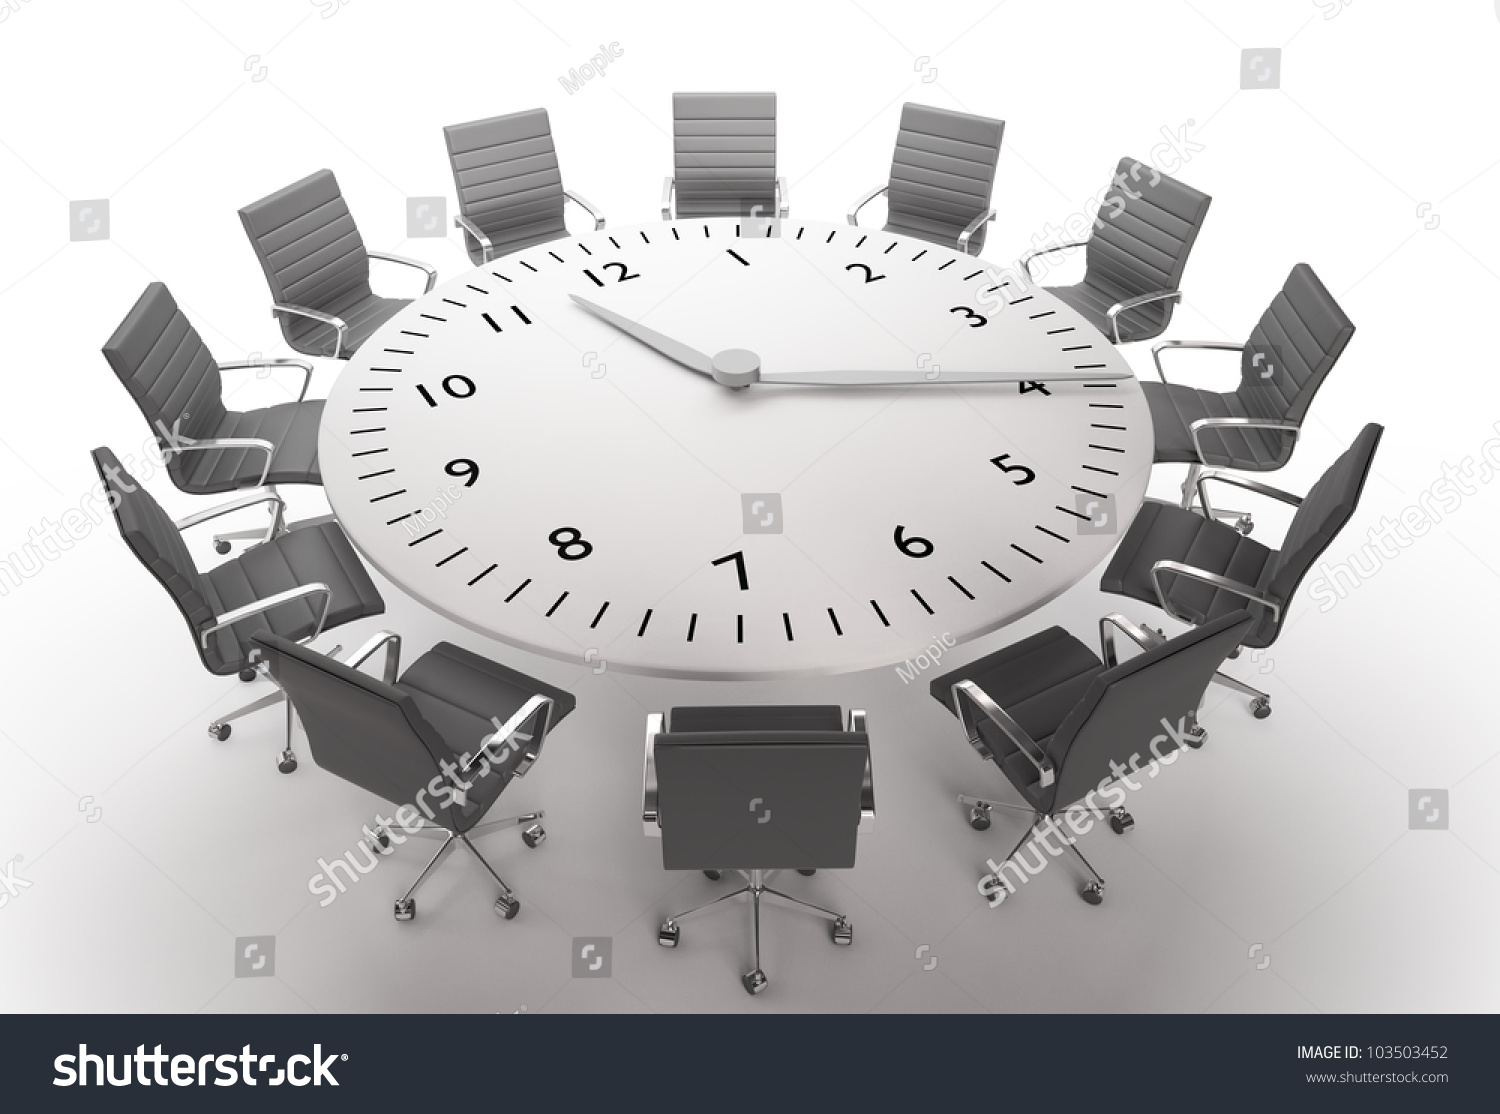 Round table meeting icon - Meeting Time Round Table With A Large Clock Face